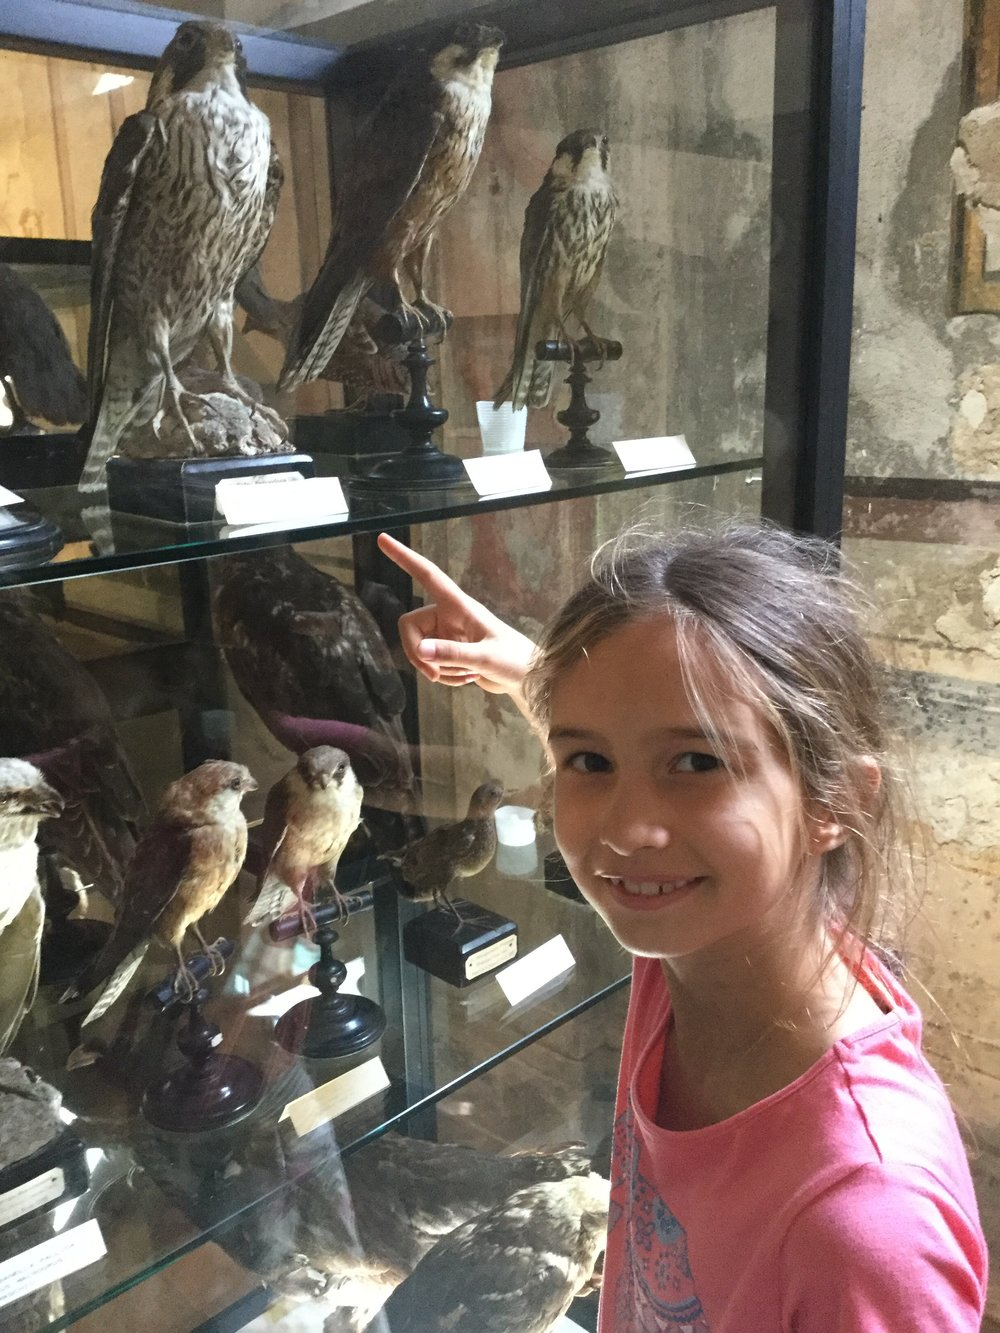 There is an Ornithology Museum with a bird collection that is over 100 years old! Lili found the Peregrine Falcon, the fastest animal on earth. She said it looked smaller than she thought.